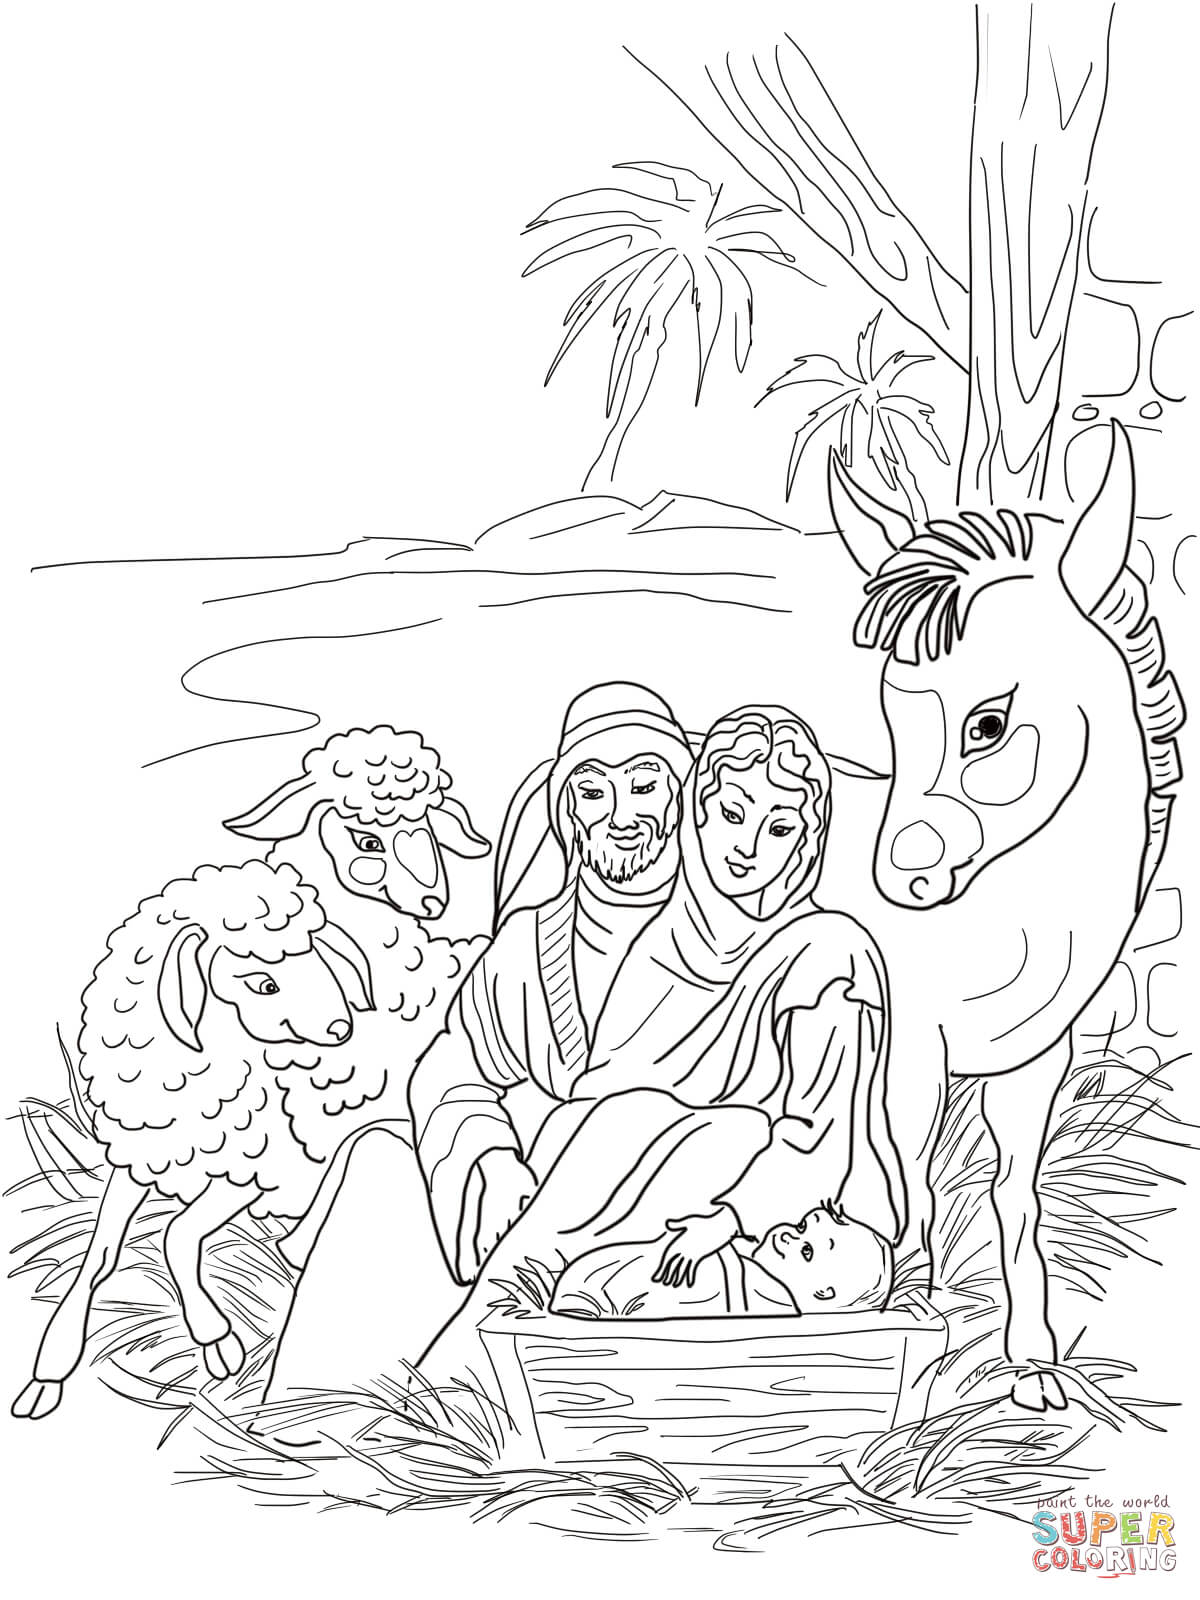 nativity animal coloring pages - photo#14